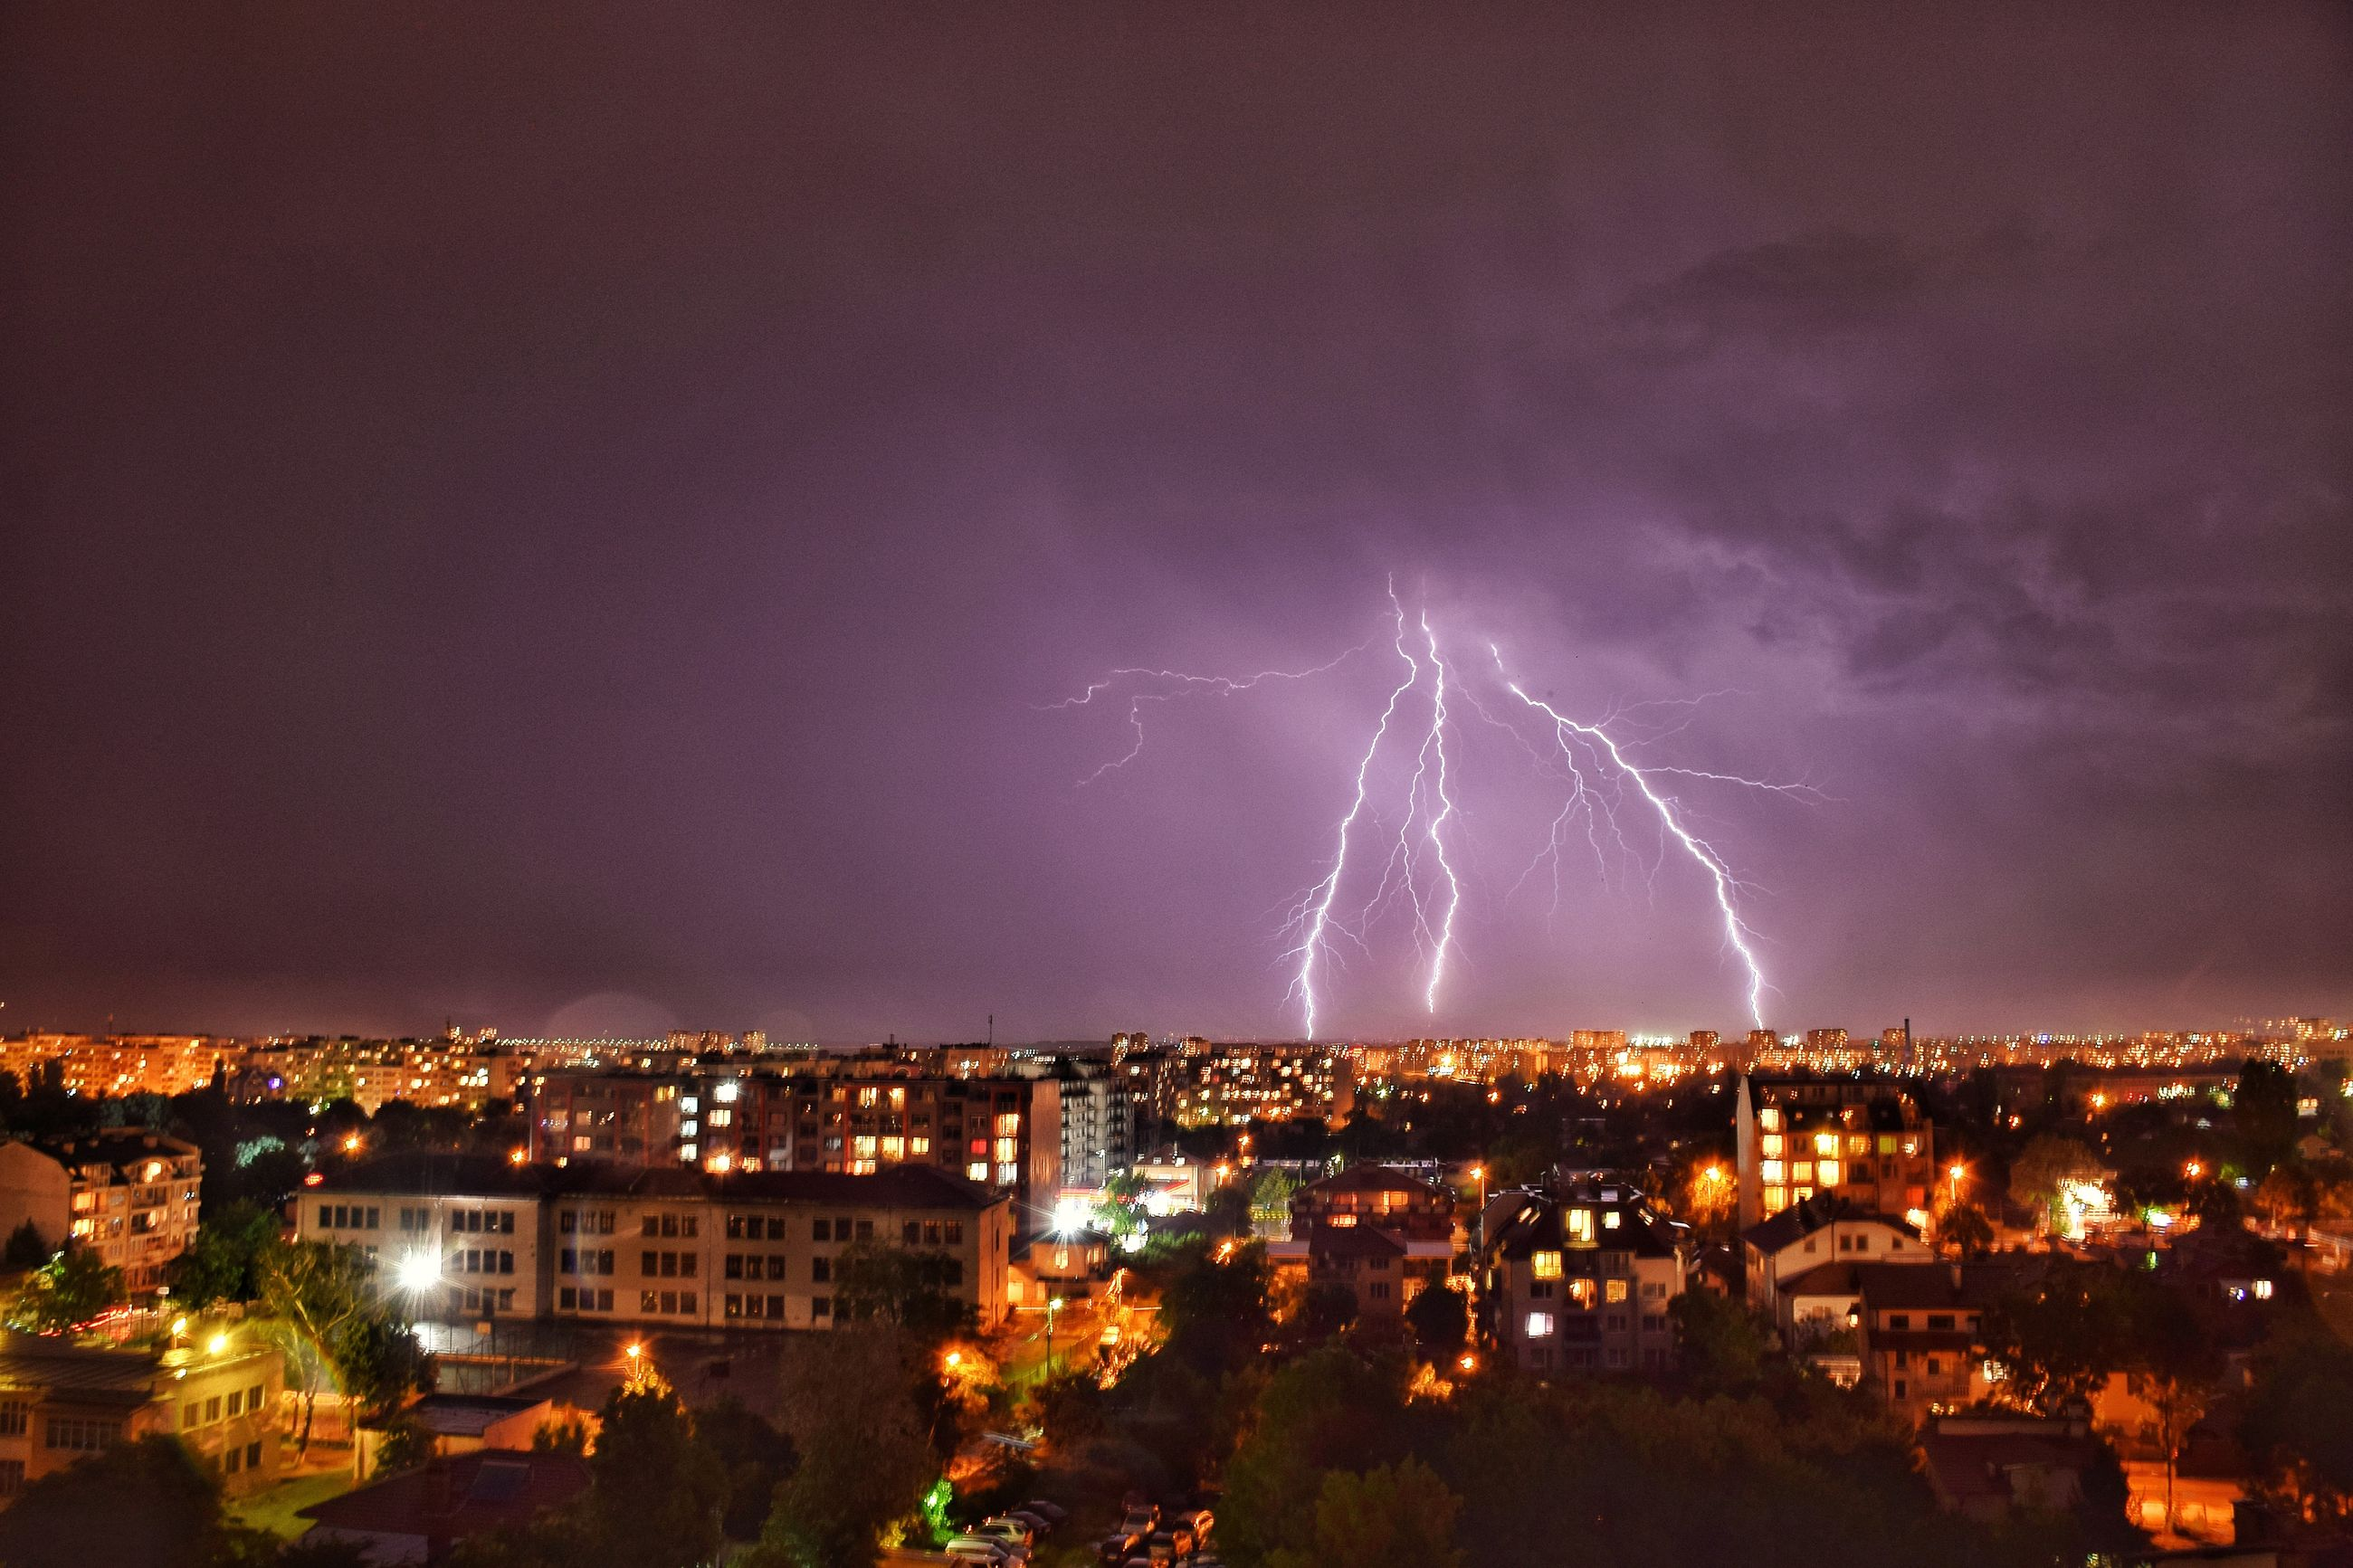 architecture, building exterior, built structure, cityscape, lightning, illuminated, night, city, sky, thunderstorm, no people, forked lightning, outdoors, residential building, power in nature, storm cloud, nature